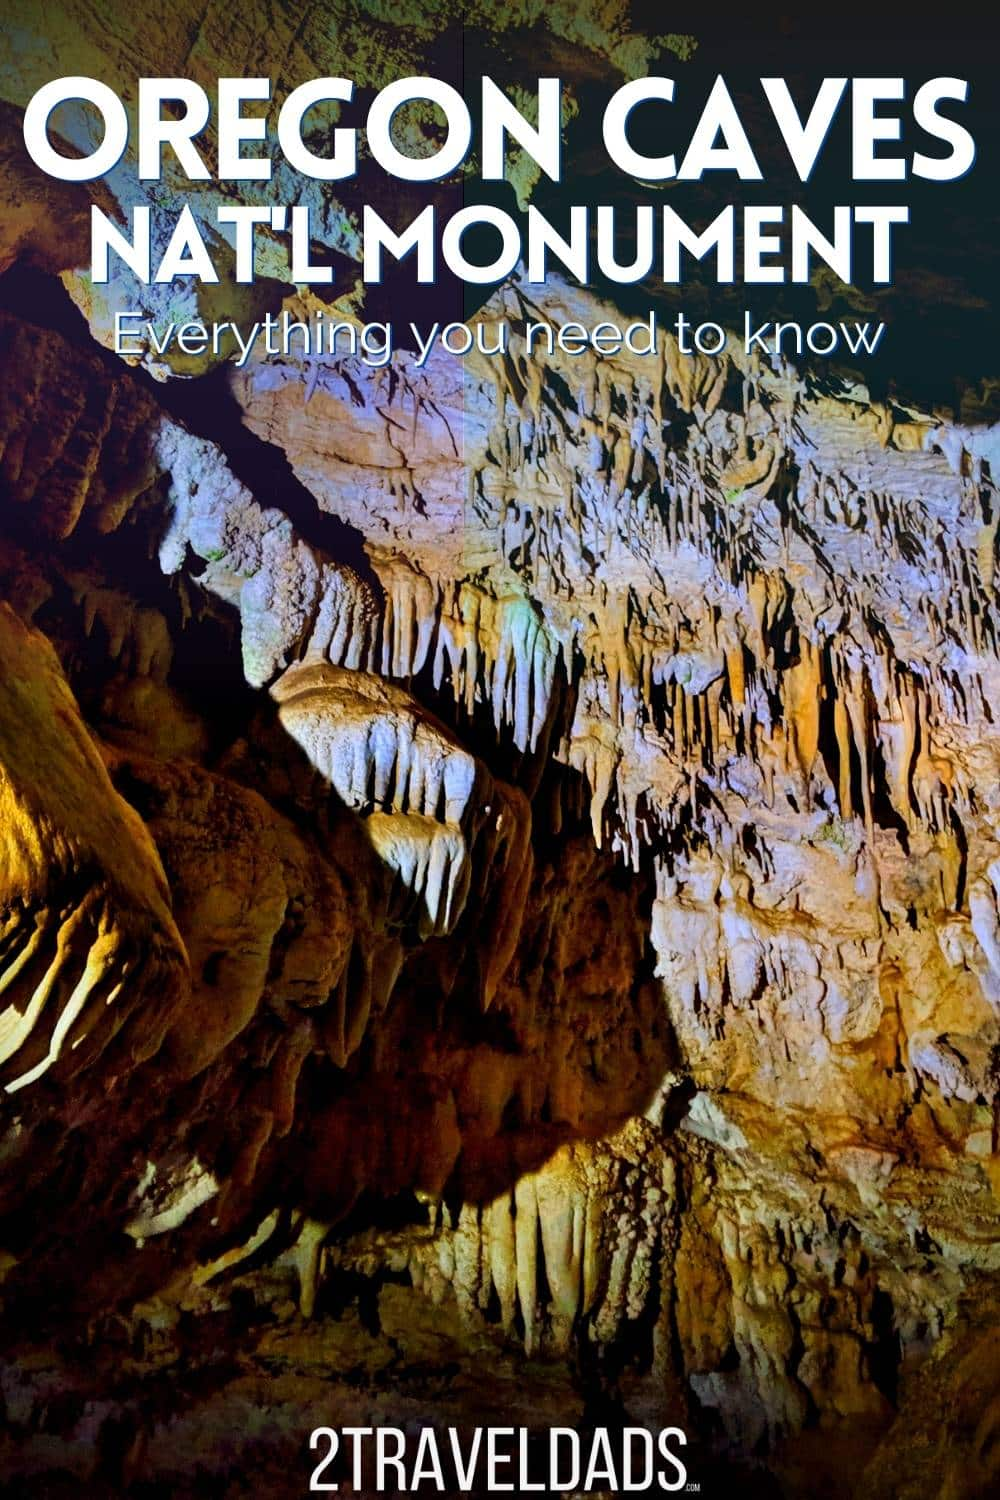 Everything you need to know to visit Oregon Caves National Monument, including cave tours, hiking trails and details of the Oregon Caves Chateau. Cave Junction, OR is worth the drive for this fascinating road trip stop!